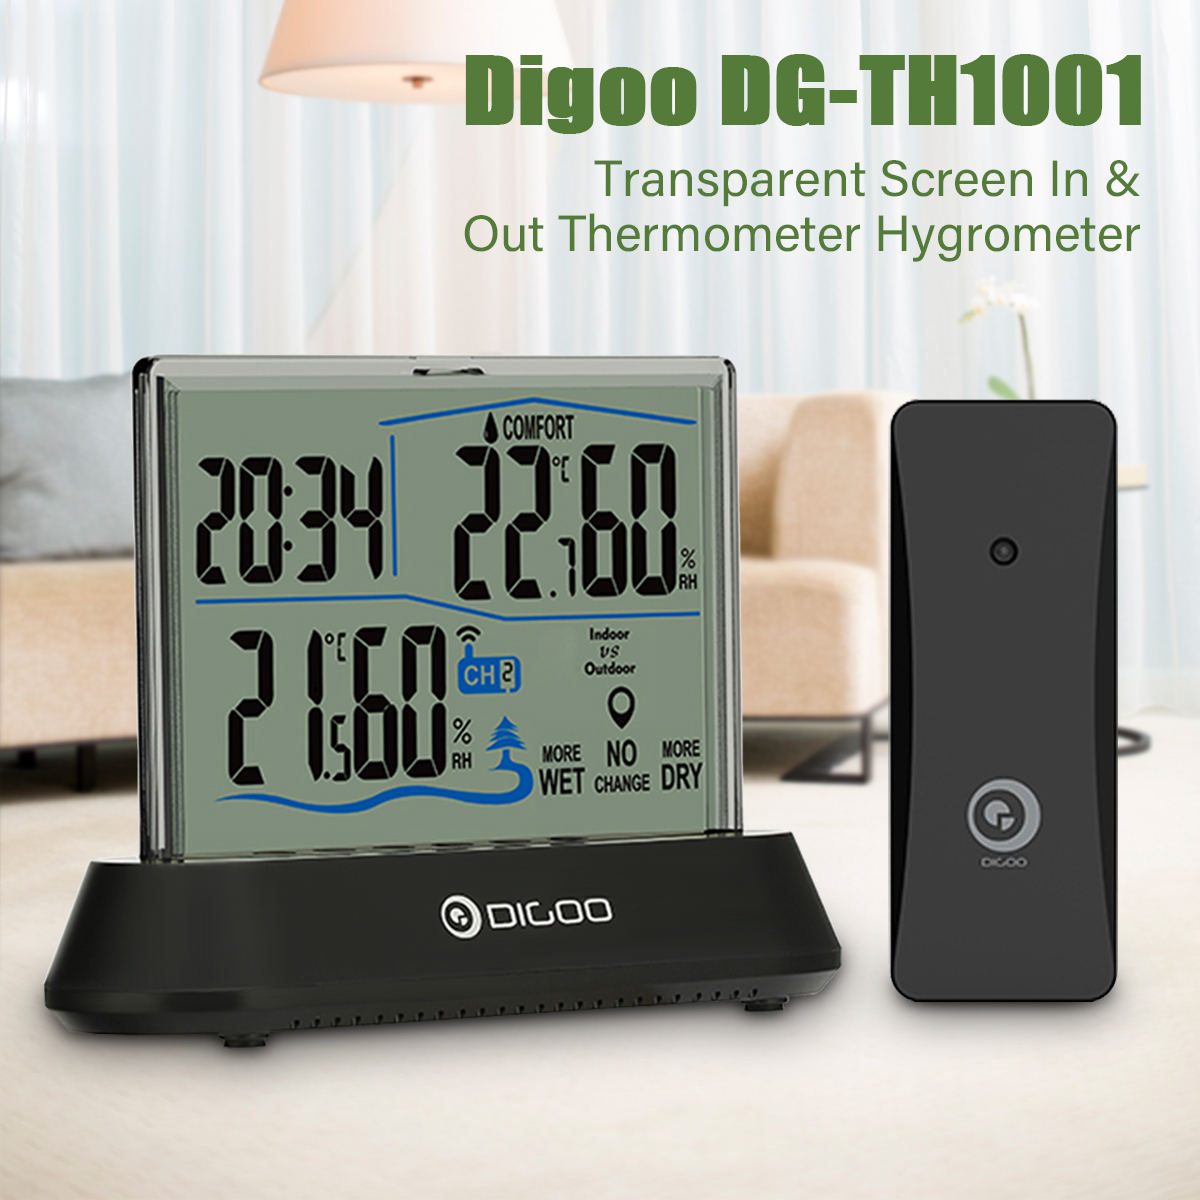 Digoo Transparent LCD Hygrometer Thermometer Weather Station Indoor Outdoor with Sensor Desk Clock,Temperature Humidity Trend Indication Display Monitor